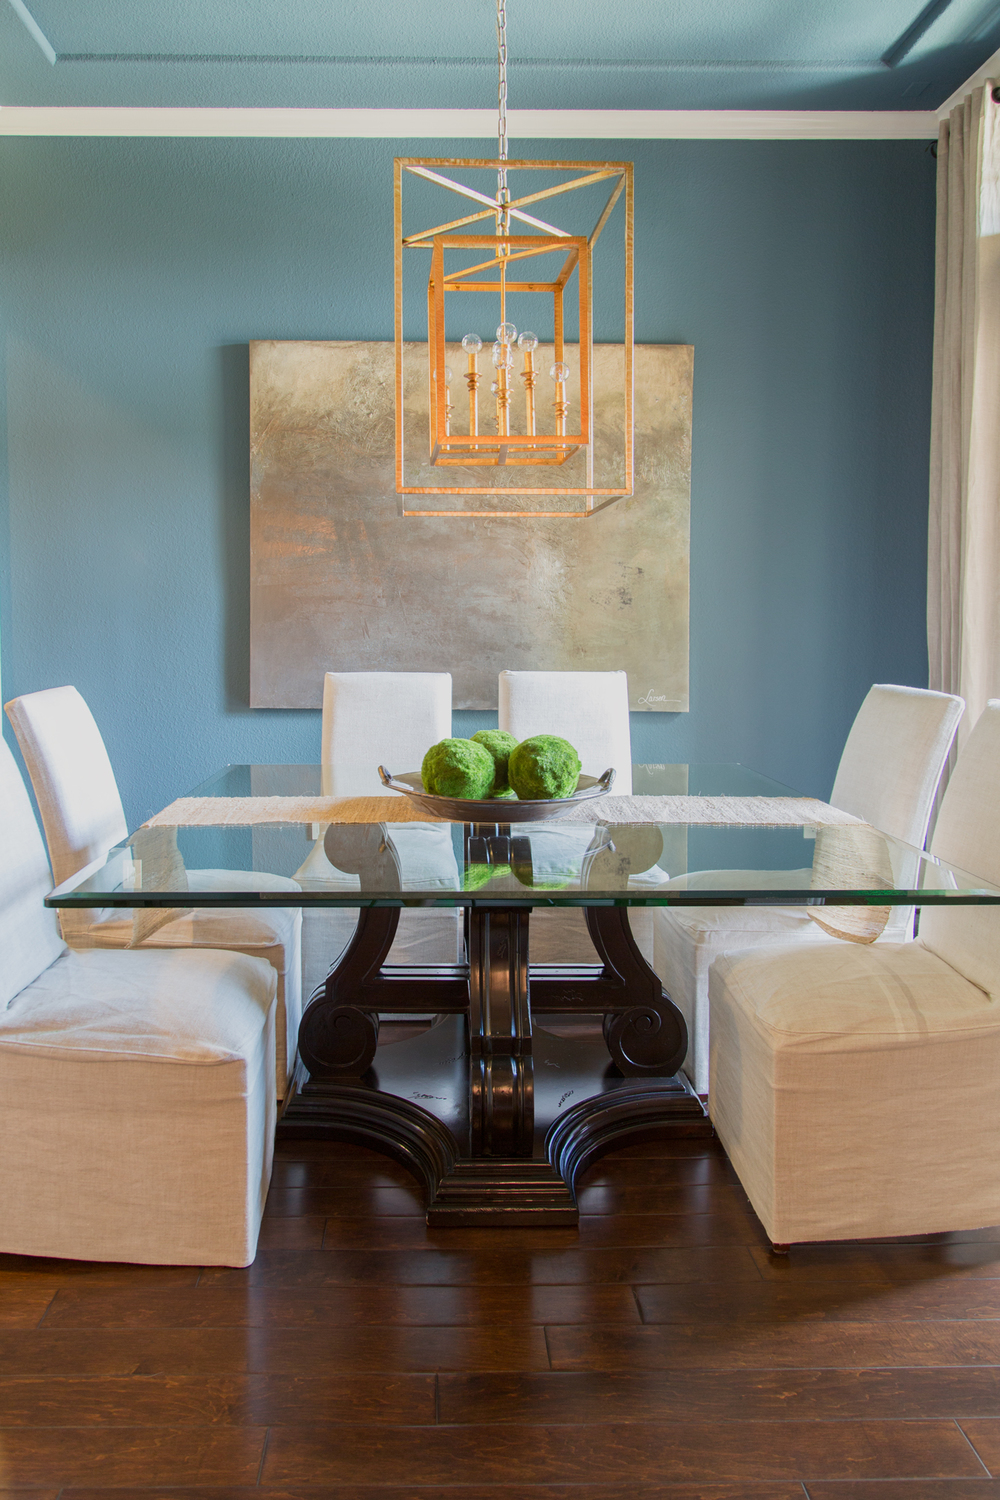 before after an interior designer design savvy homeowner collaborate on a fabulous full